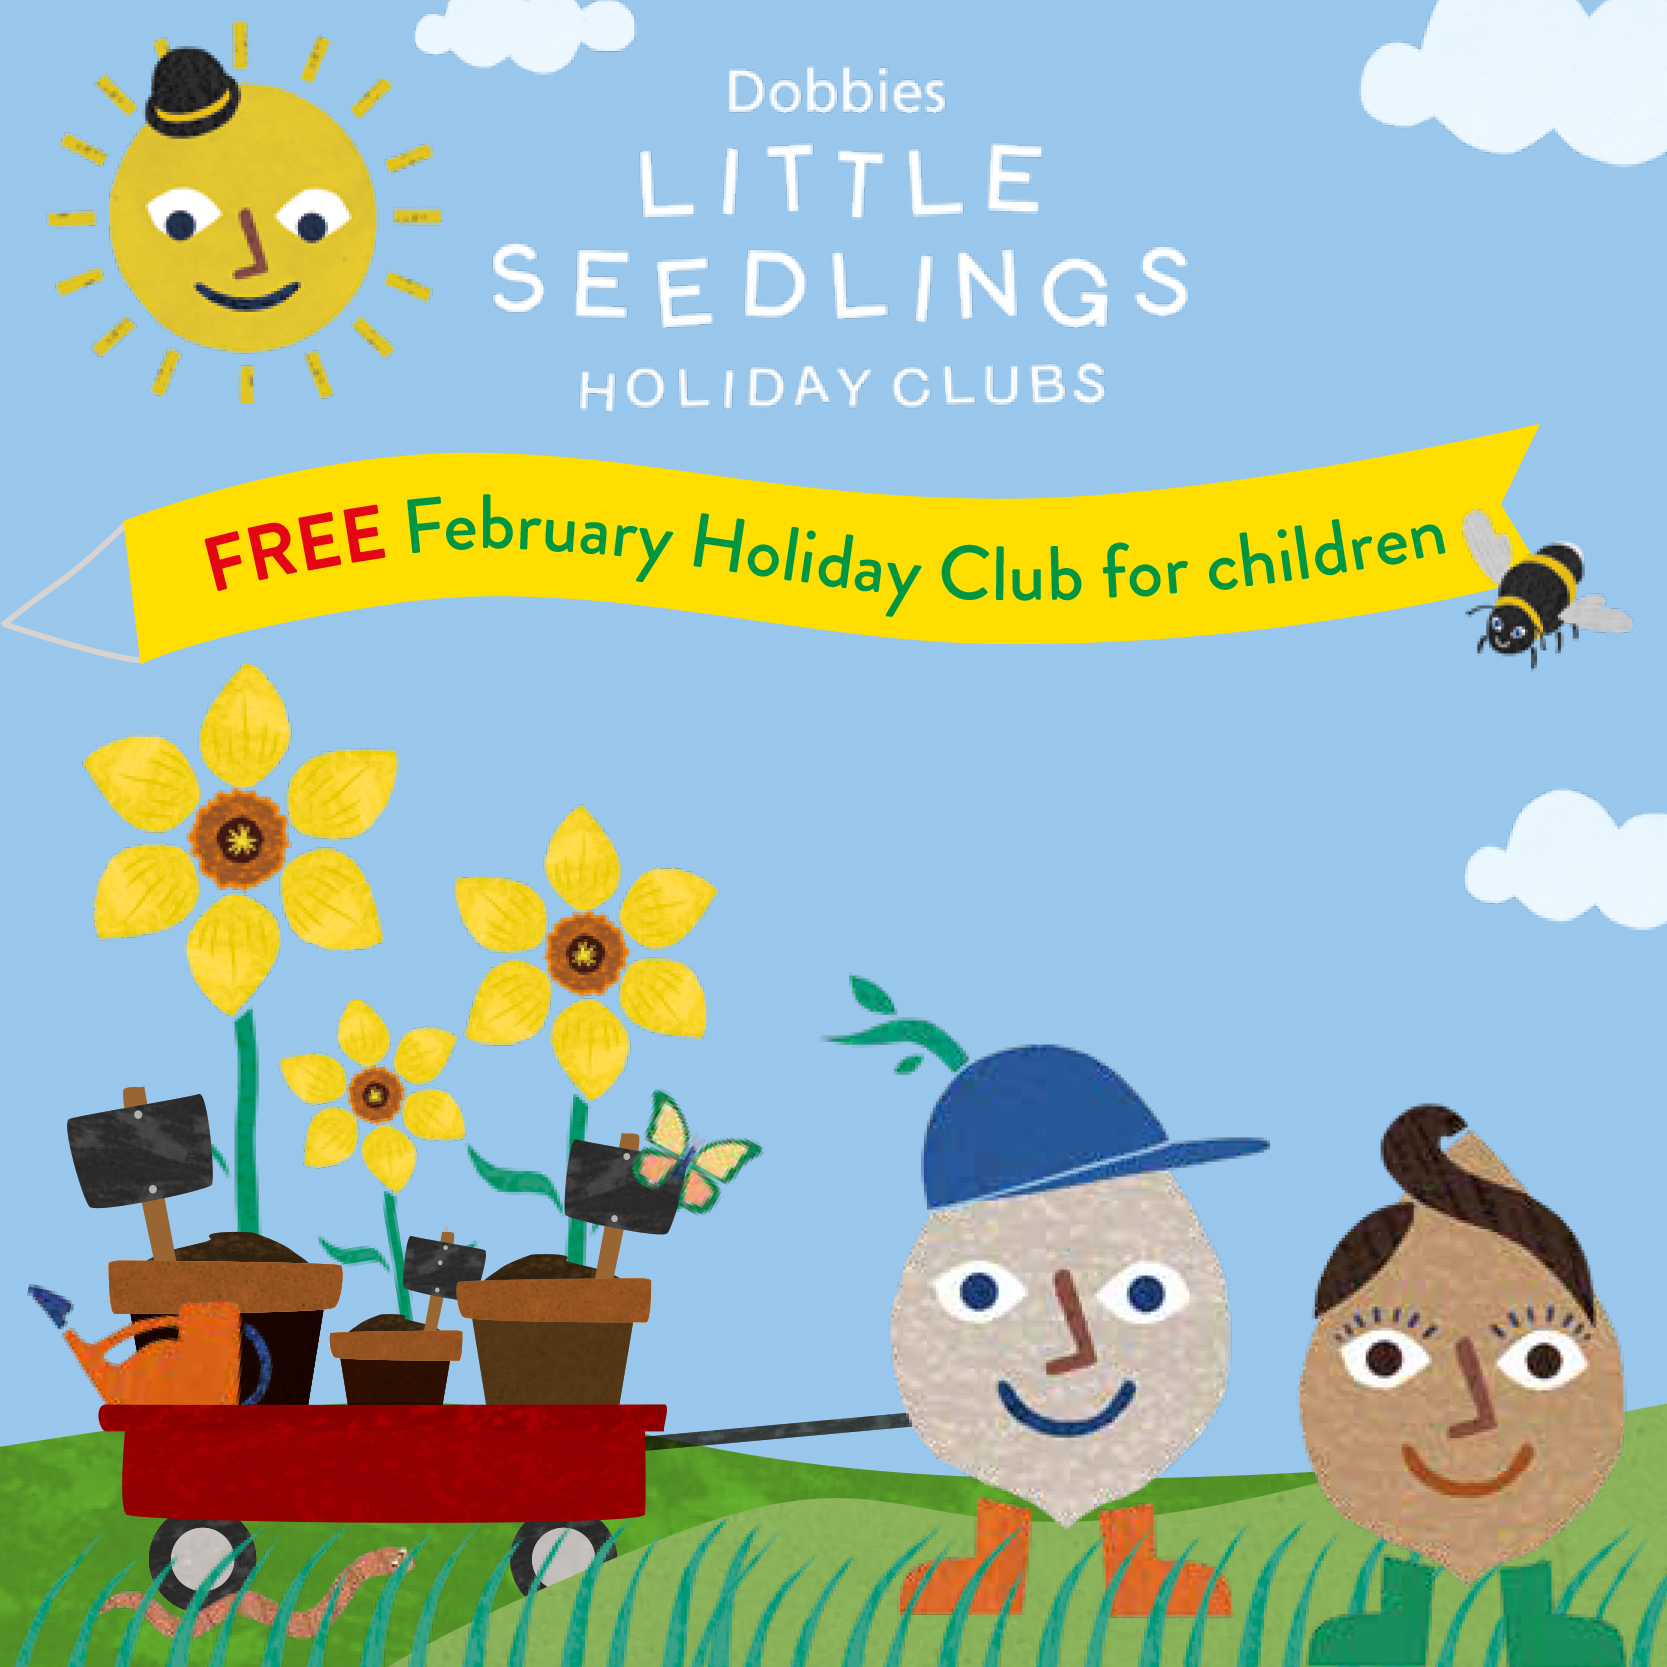 LSC 10826 Little Seedlings February Holiday Club Facebook Post Image 400X400px